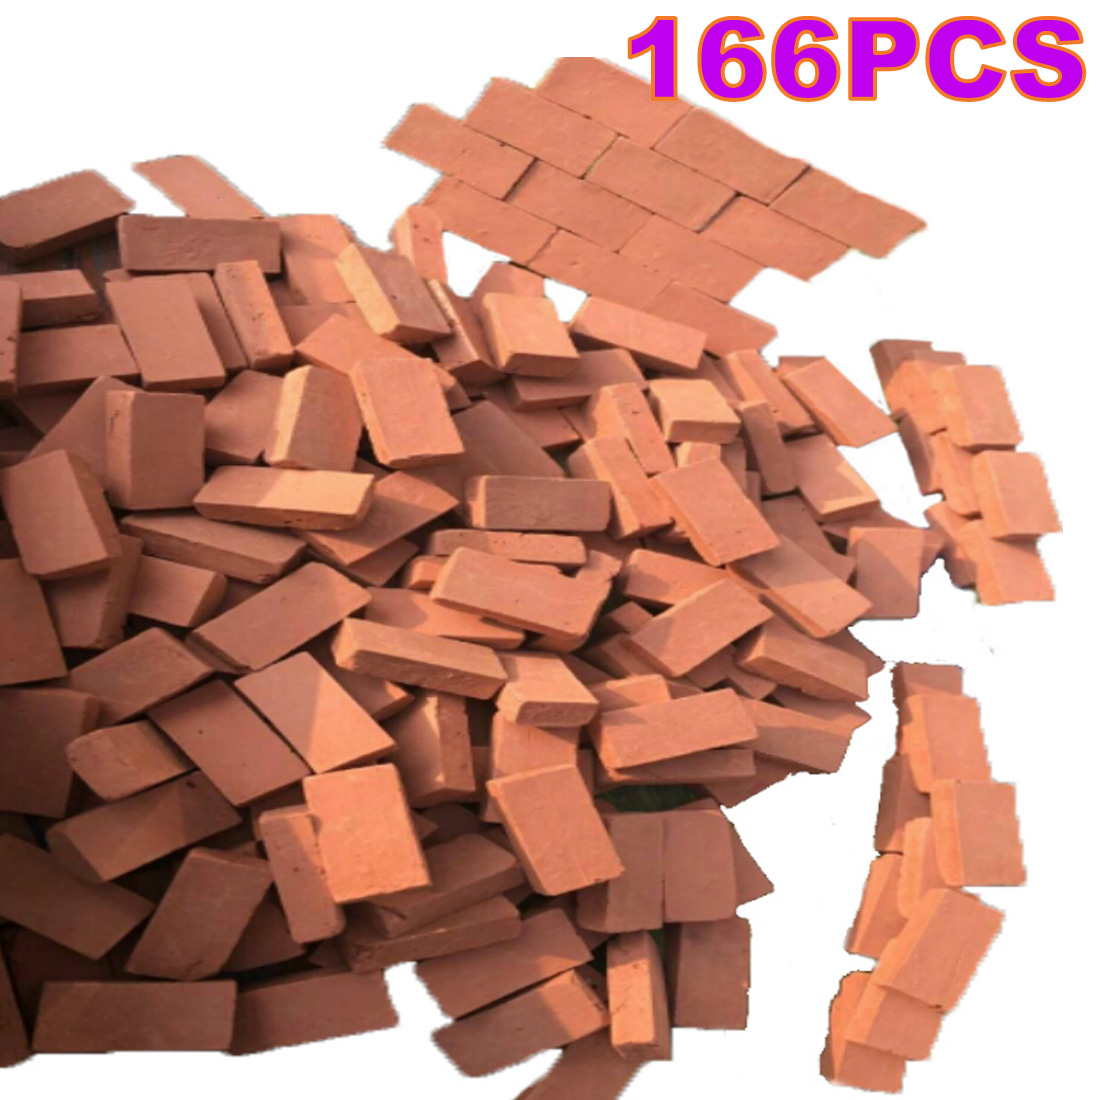 166Pcs 1:16 Scale Mini Red Bricks Model Antique Micro Landscape Decorative Bricks For DIY Sand Table Building - Orange Red